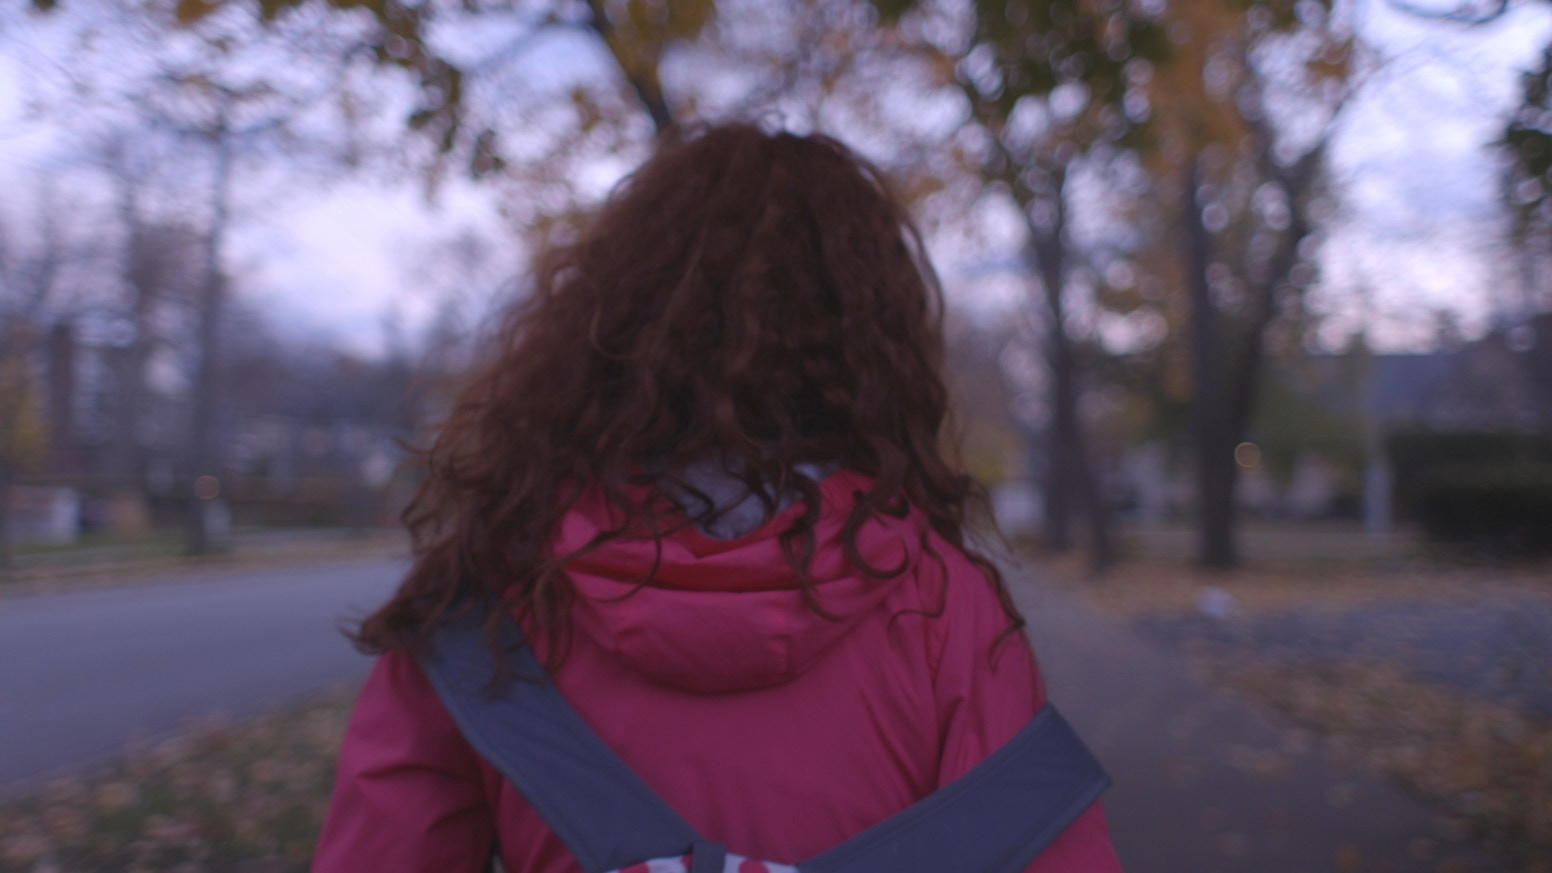 A little film about a kid named Lissie, our otherness, and the shadows that come for us all.